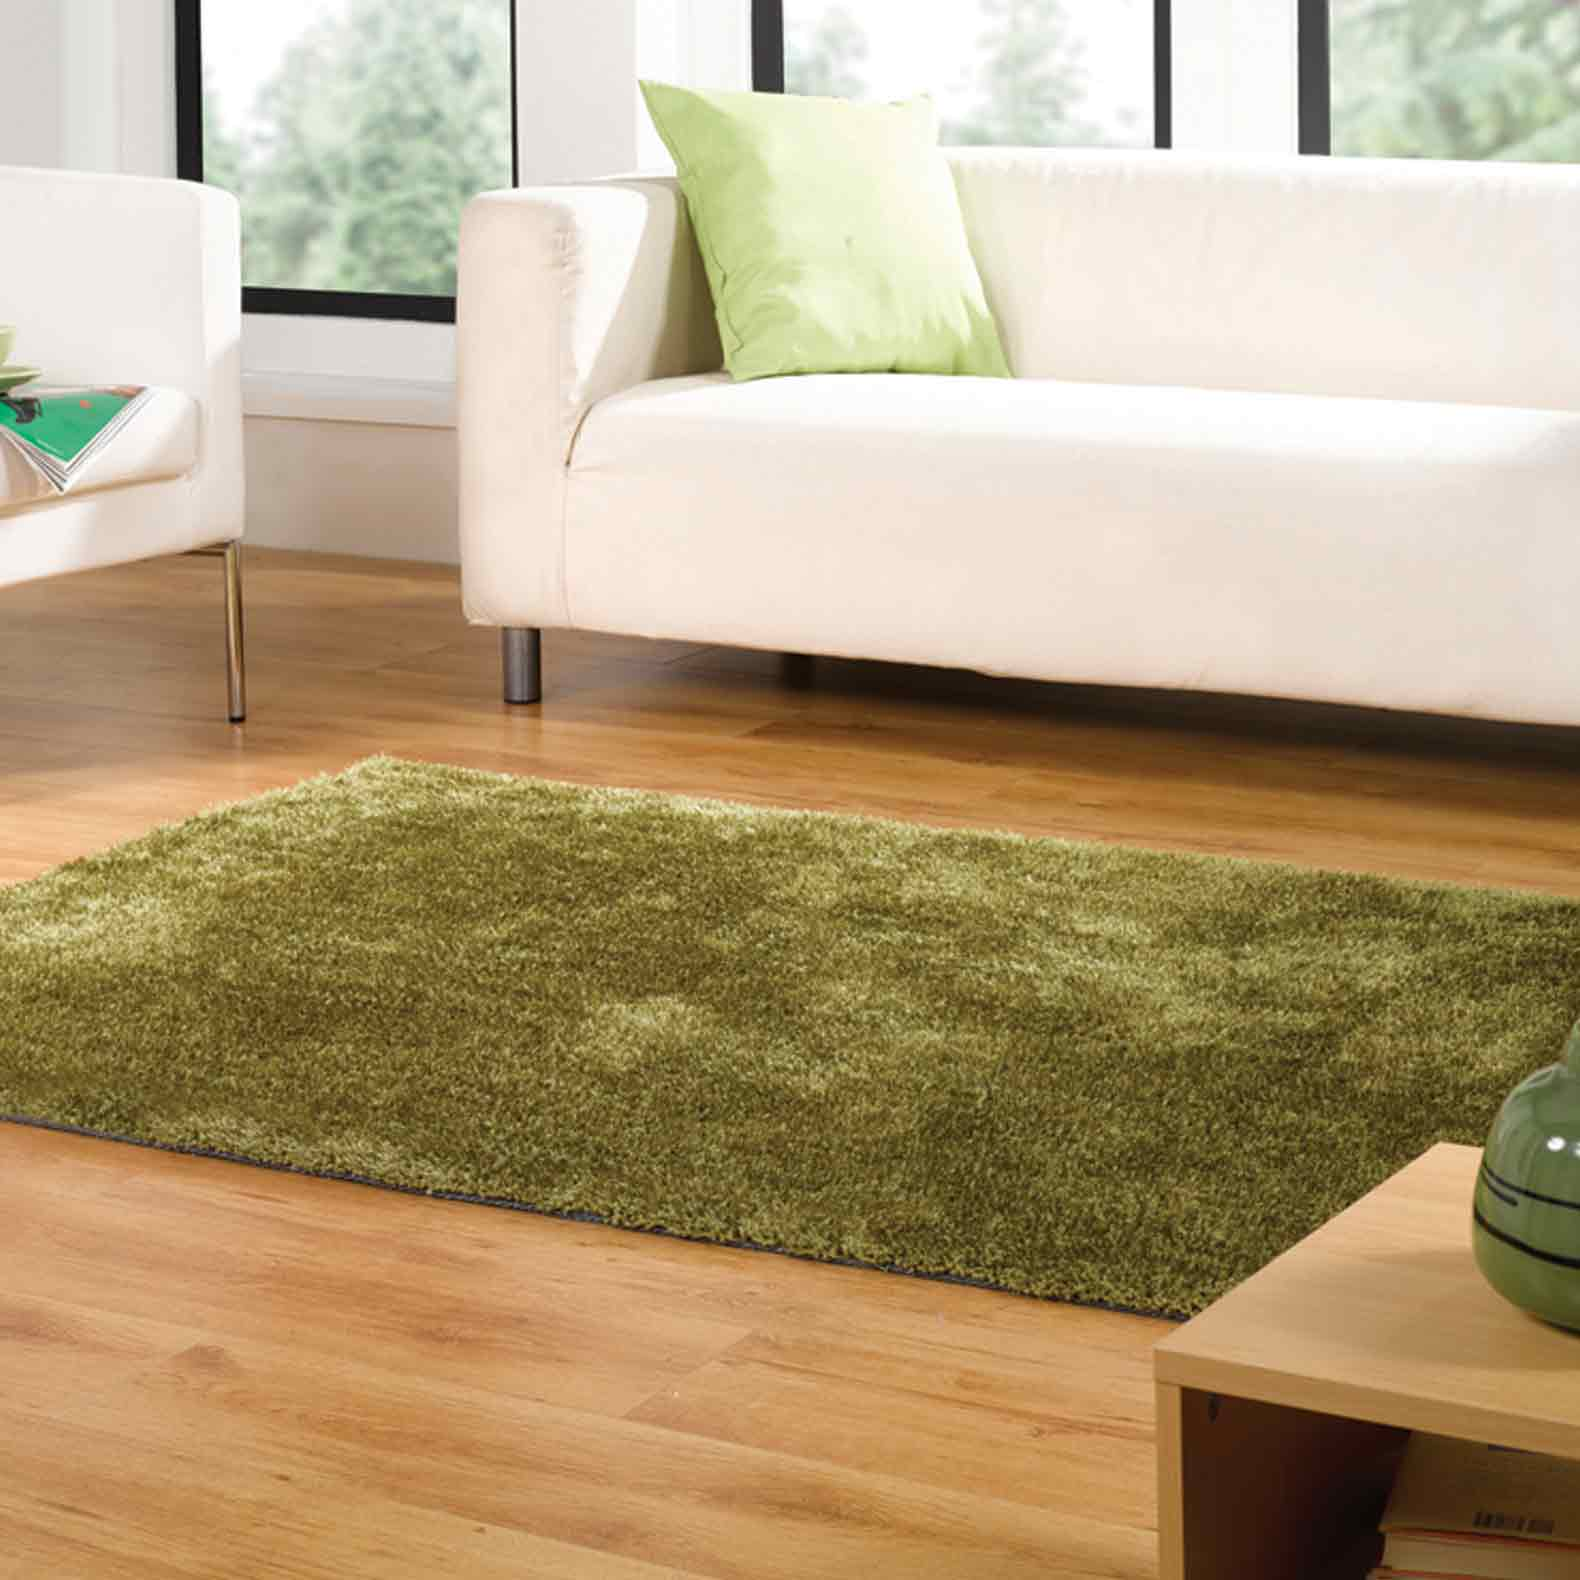 Grande Vista Shaggy Rugs in Green Mix